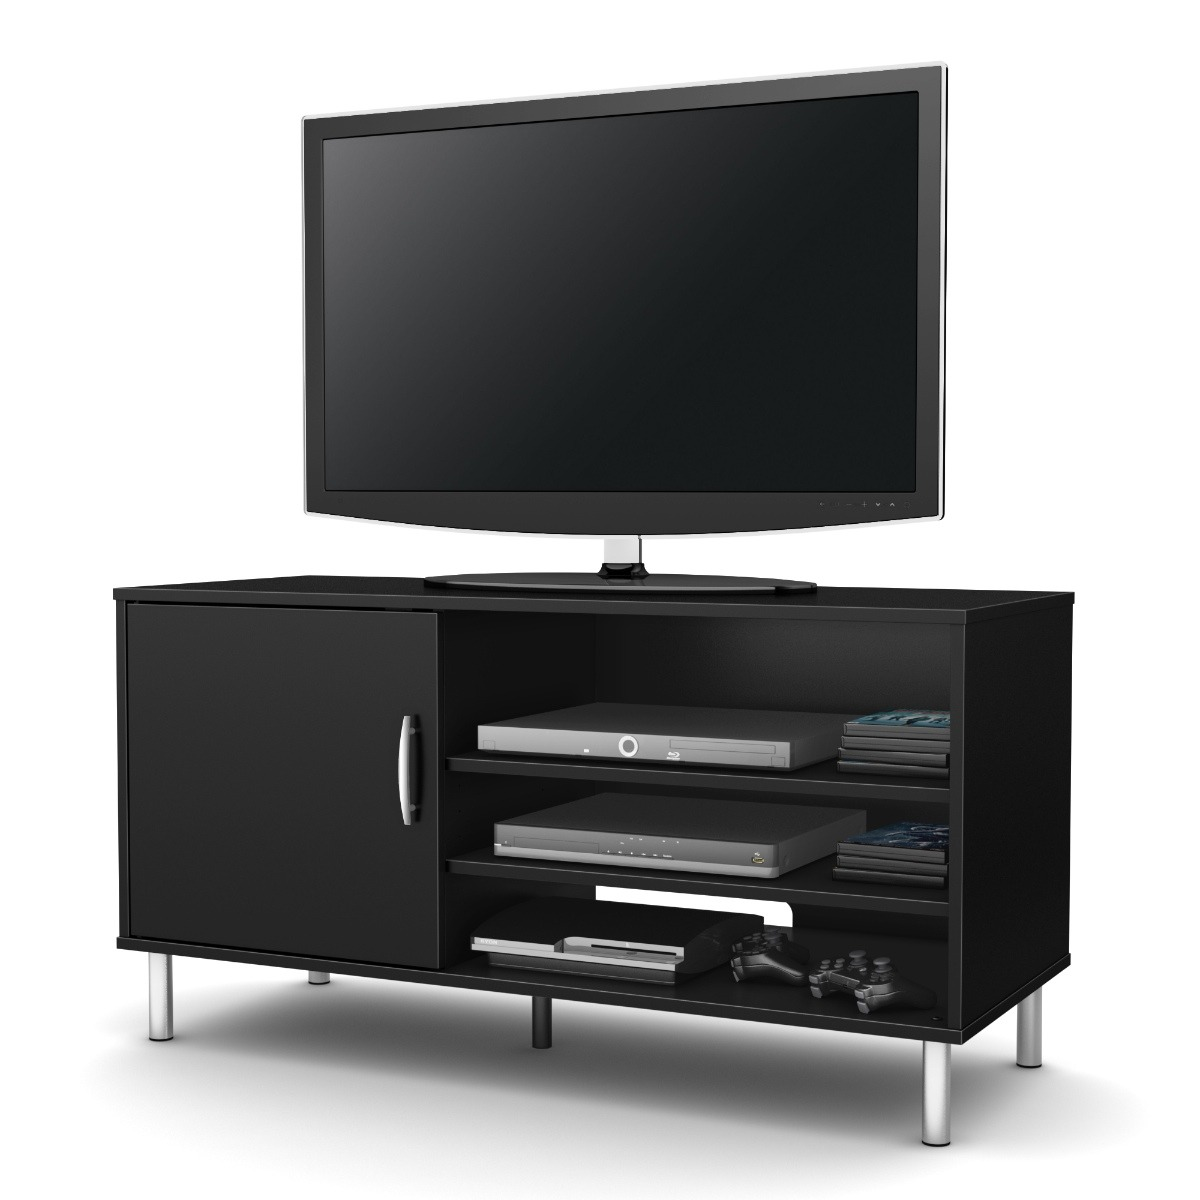 Mueble tv y multimedia moderno color negro pc9ng 2 799 - Mueble tv negro ...